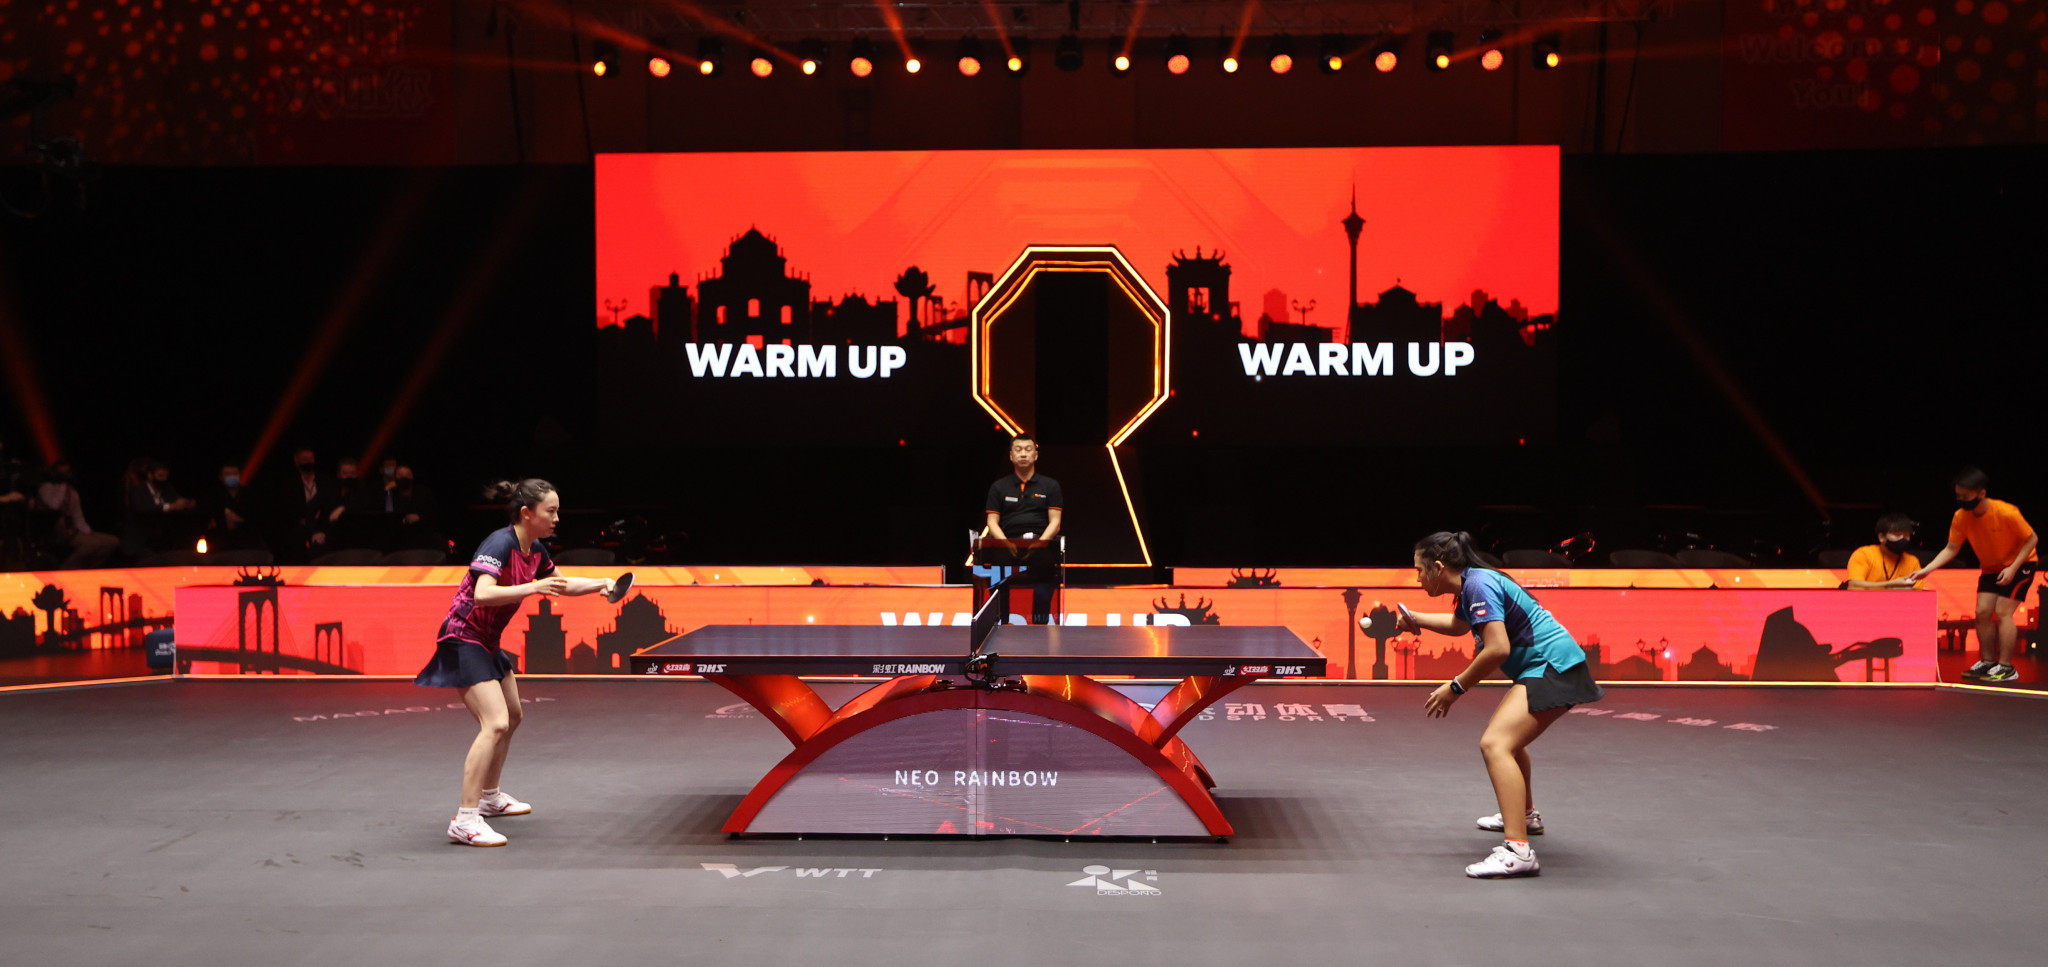 The German Table Tennis Federation has raised concerns about the implementation of World Table Tennis ©ITTF